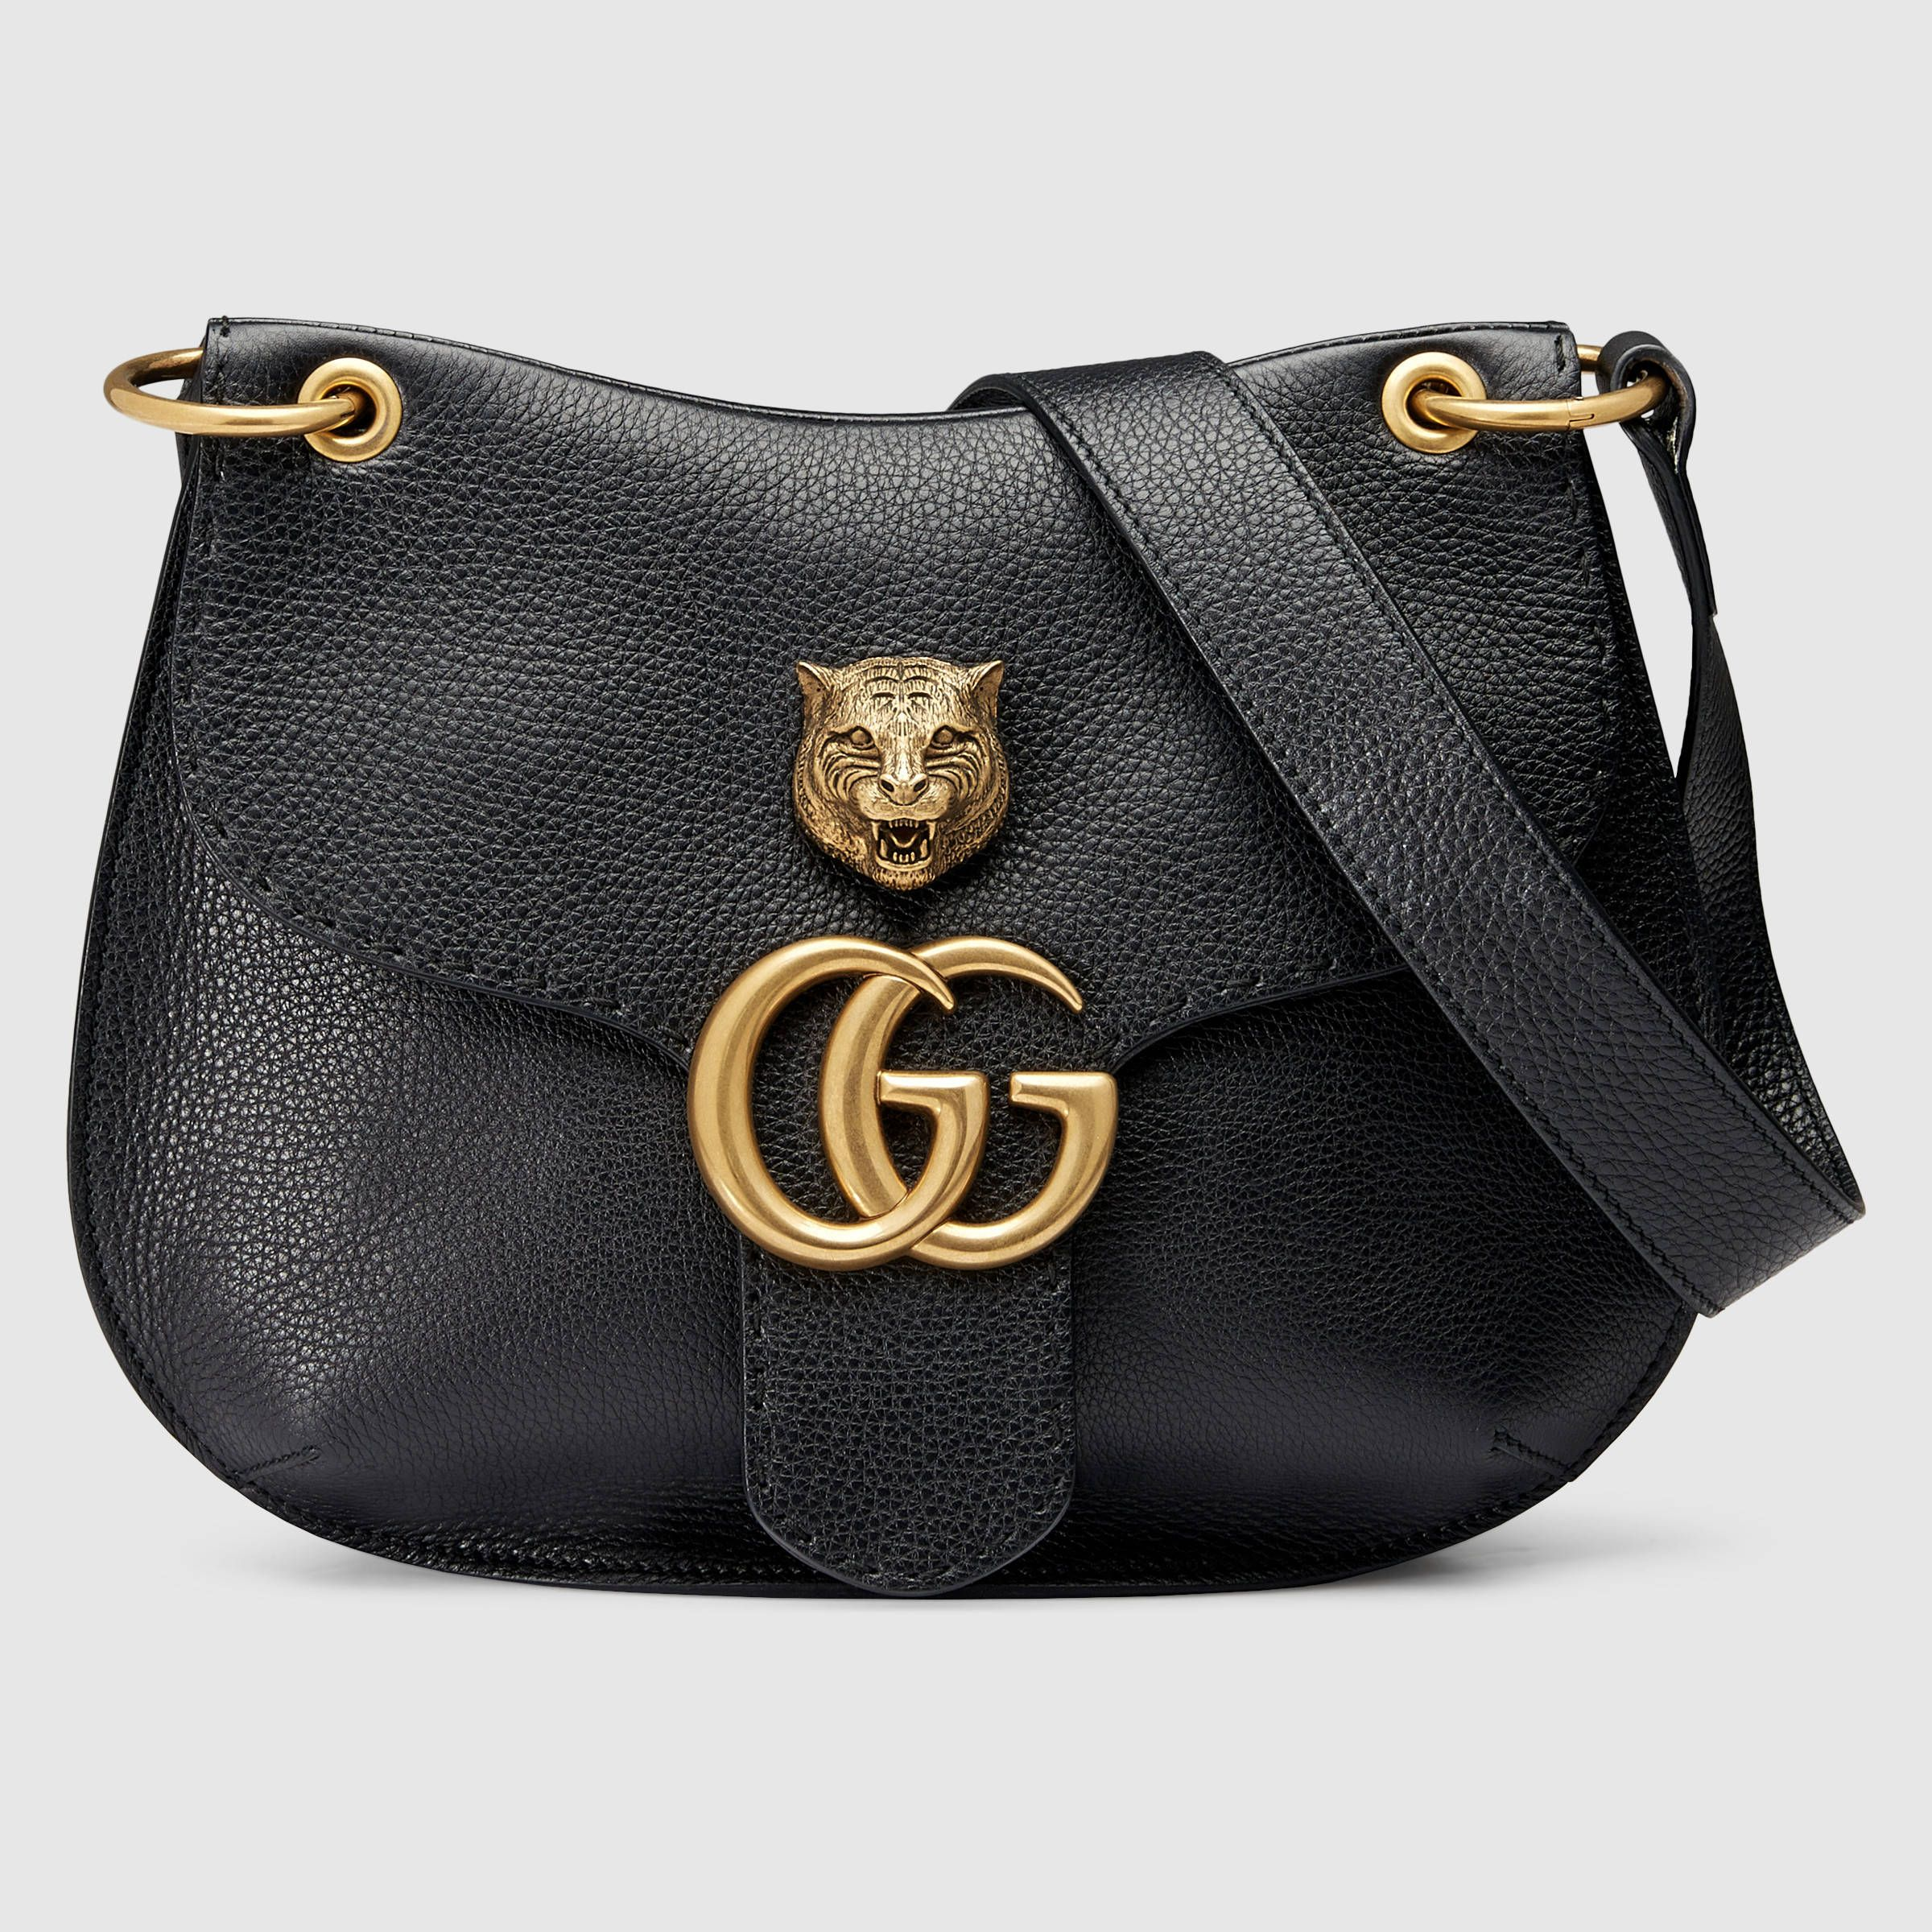 gucci bags under 1000. gucci women - gg marmont leather shoulder bag 409154a7m0t1000 bags under 1000 t